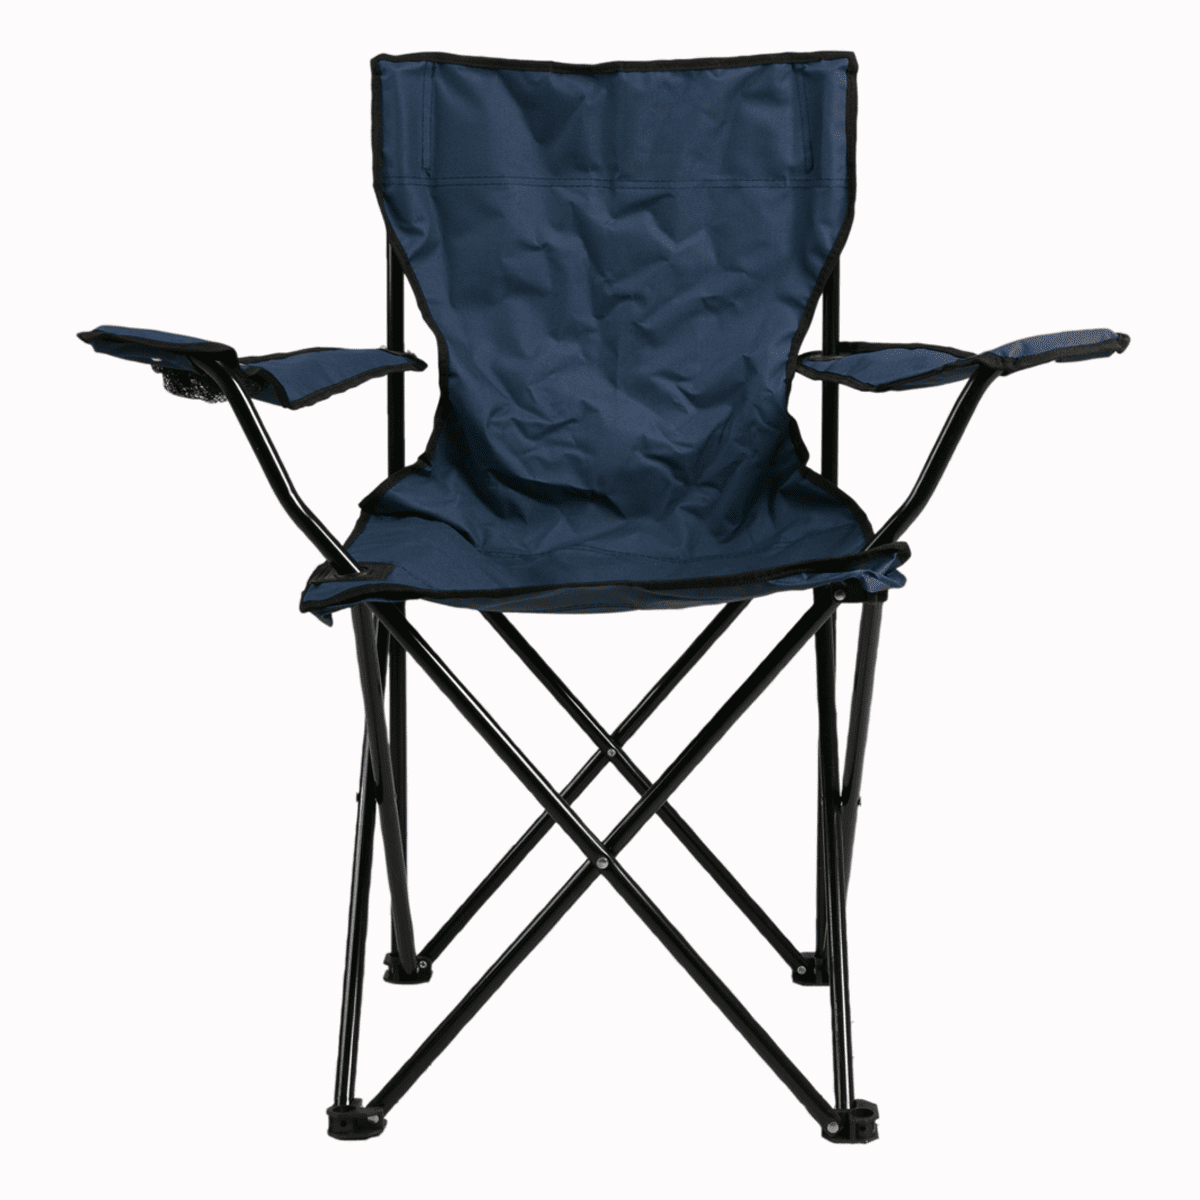 Oxford Camping Chair ( 48 x 48 x 87 cm)